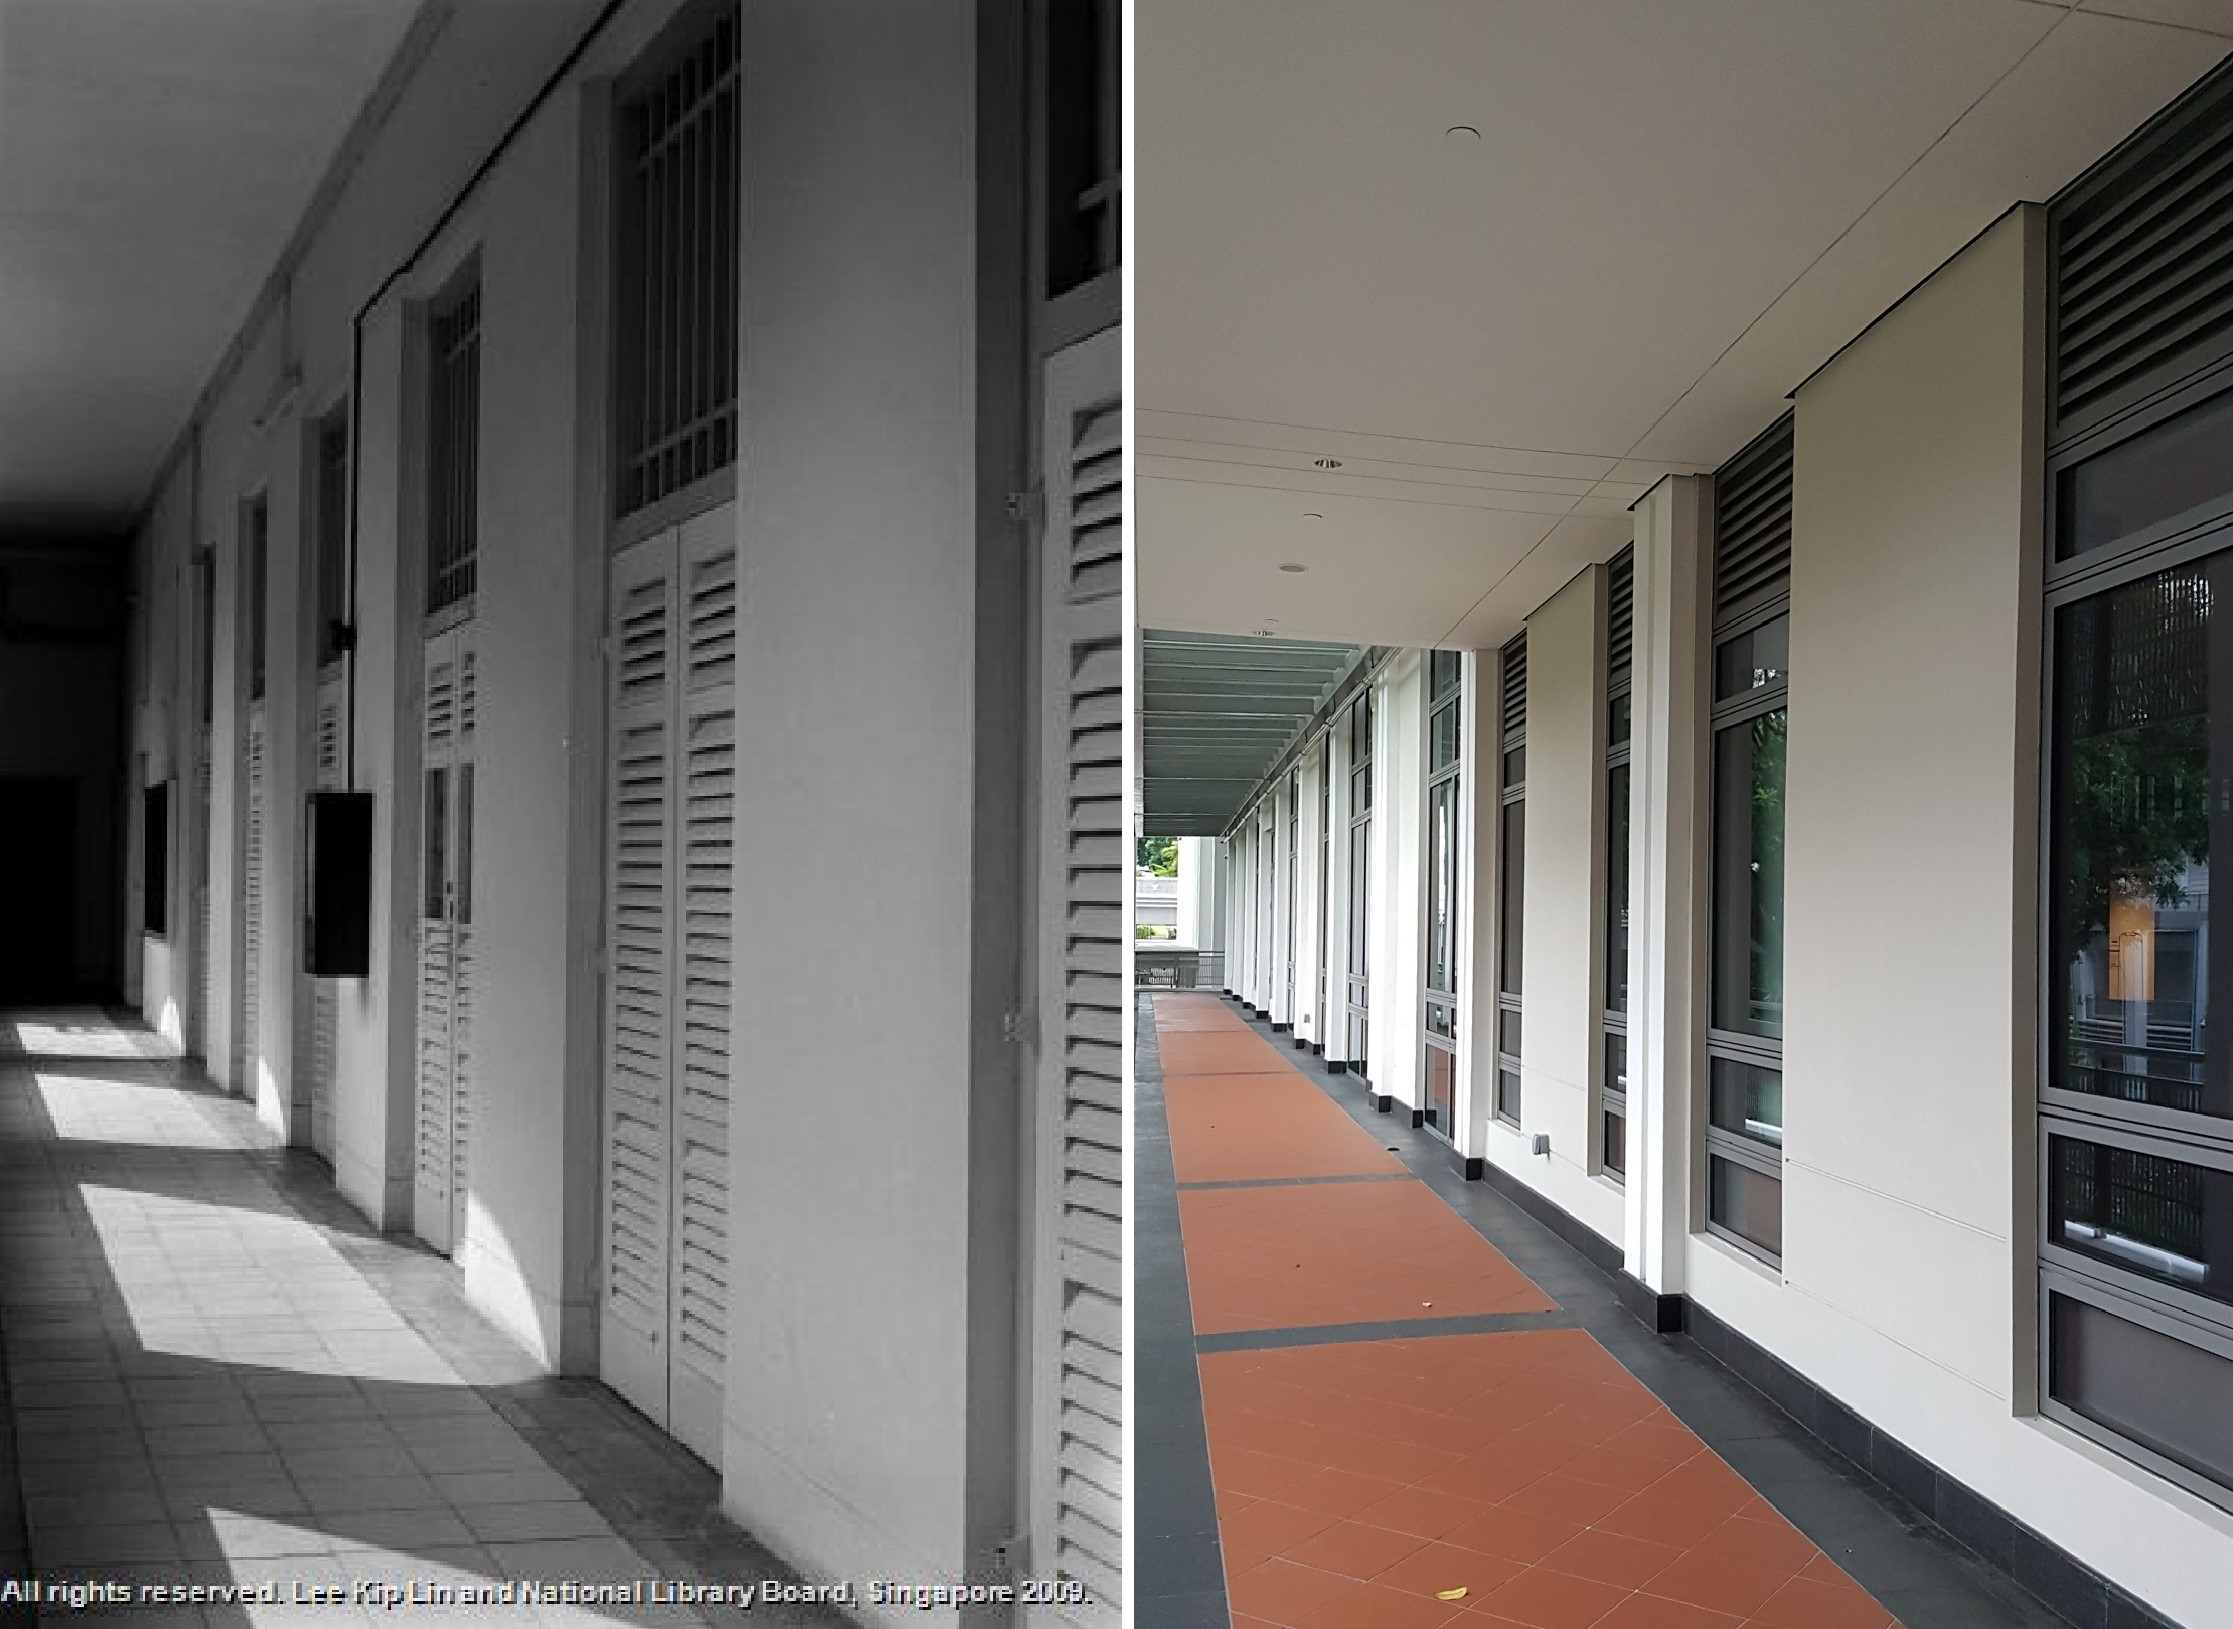 Raffles College and Yale-NUS College: The 'Then' and The 'Now'.